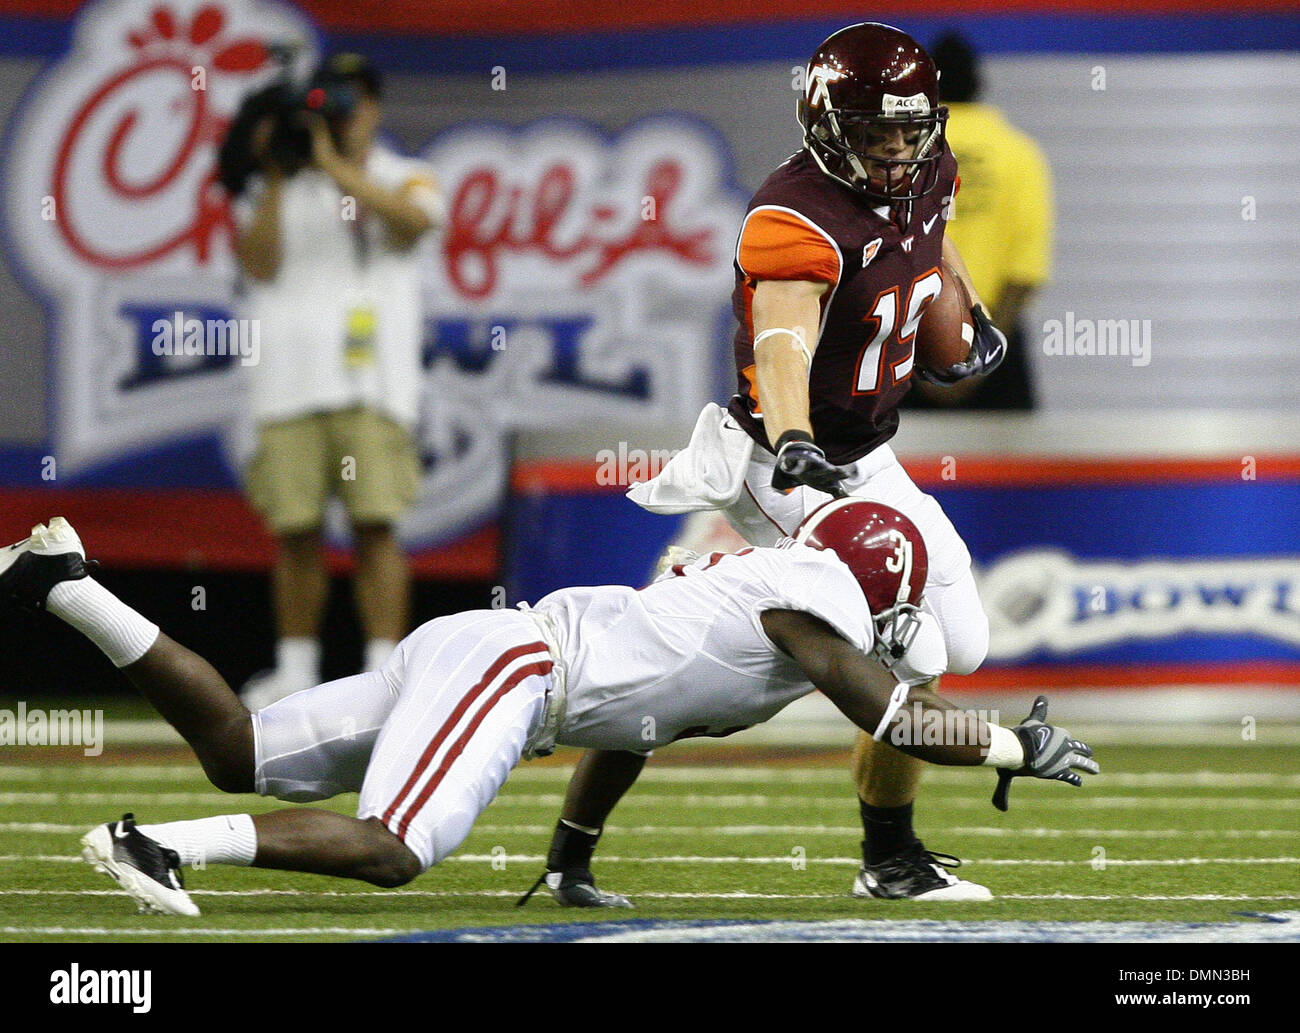 Sep 05, 2009 - Atlanta, Georgia, USA - NCAA Football - Virginia Tech's DANNY COALE (19) prepares to stiff arm Alabama's KAREEM JACKSON (3) during the first half of their season opener in the Georgia Dome. (Credit Image: © Josh D. Weiss/ZUMA Press) - Stock Image